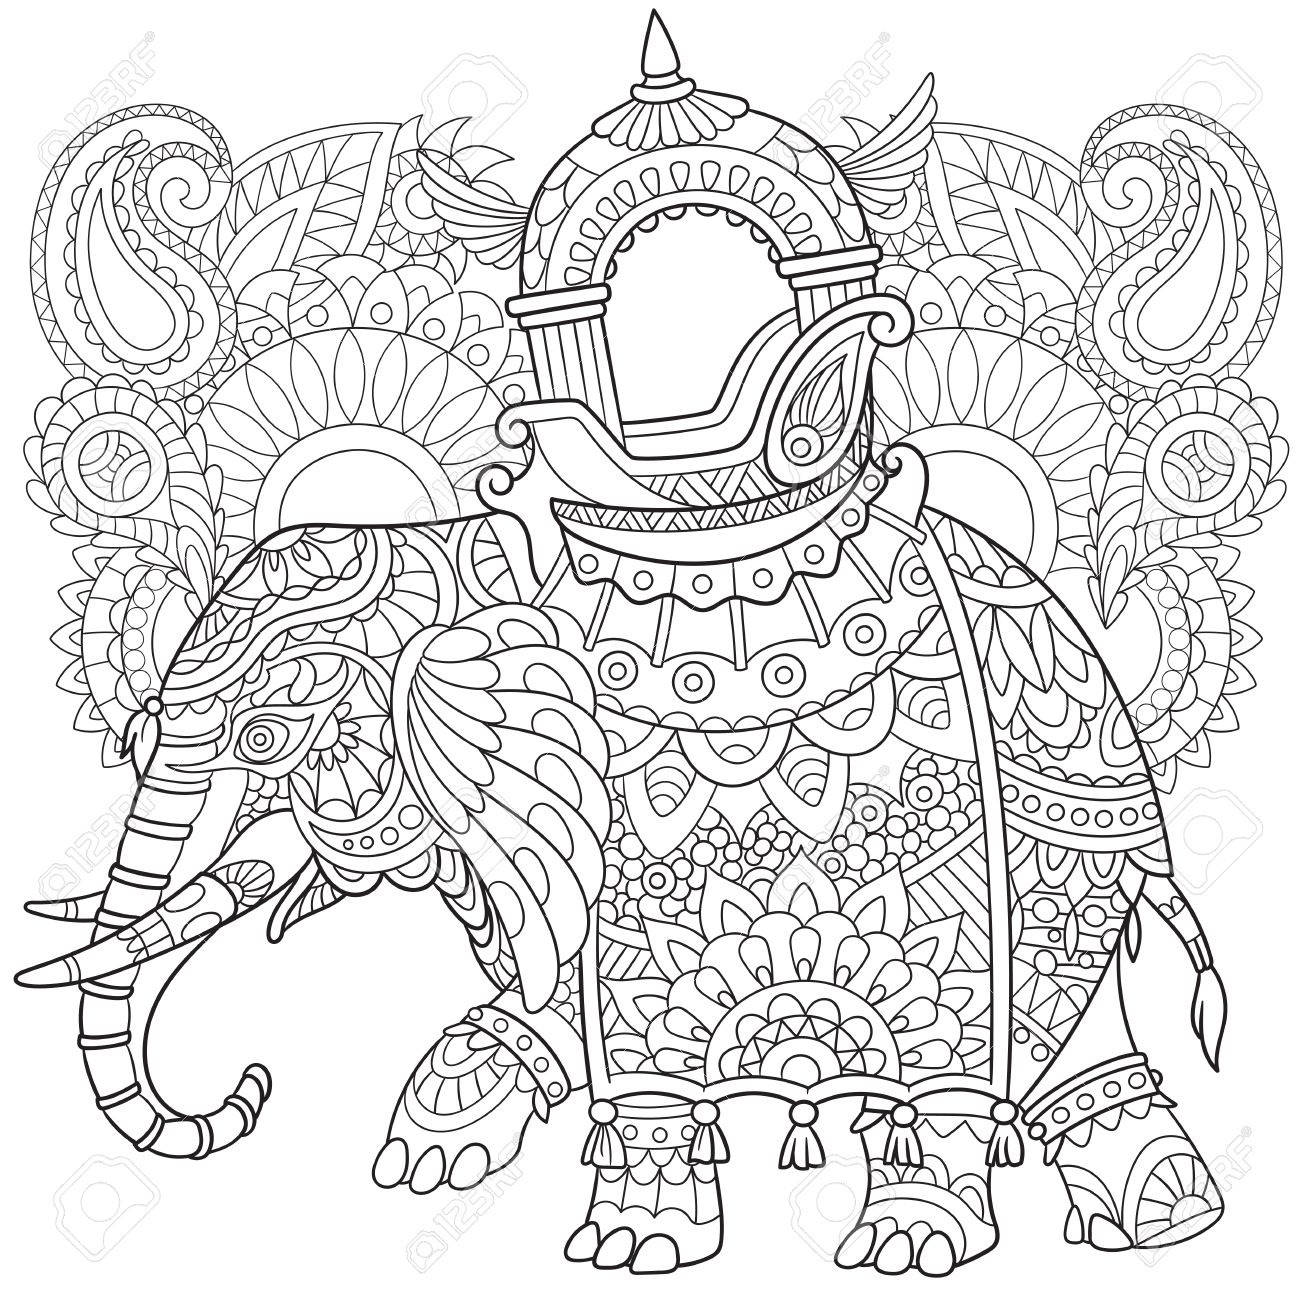 cartoon elephant with paisley and mehndi symbols sketch for